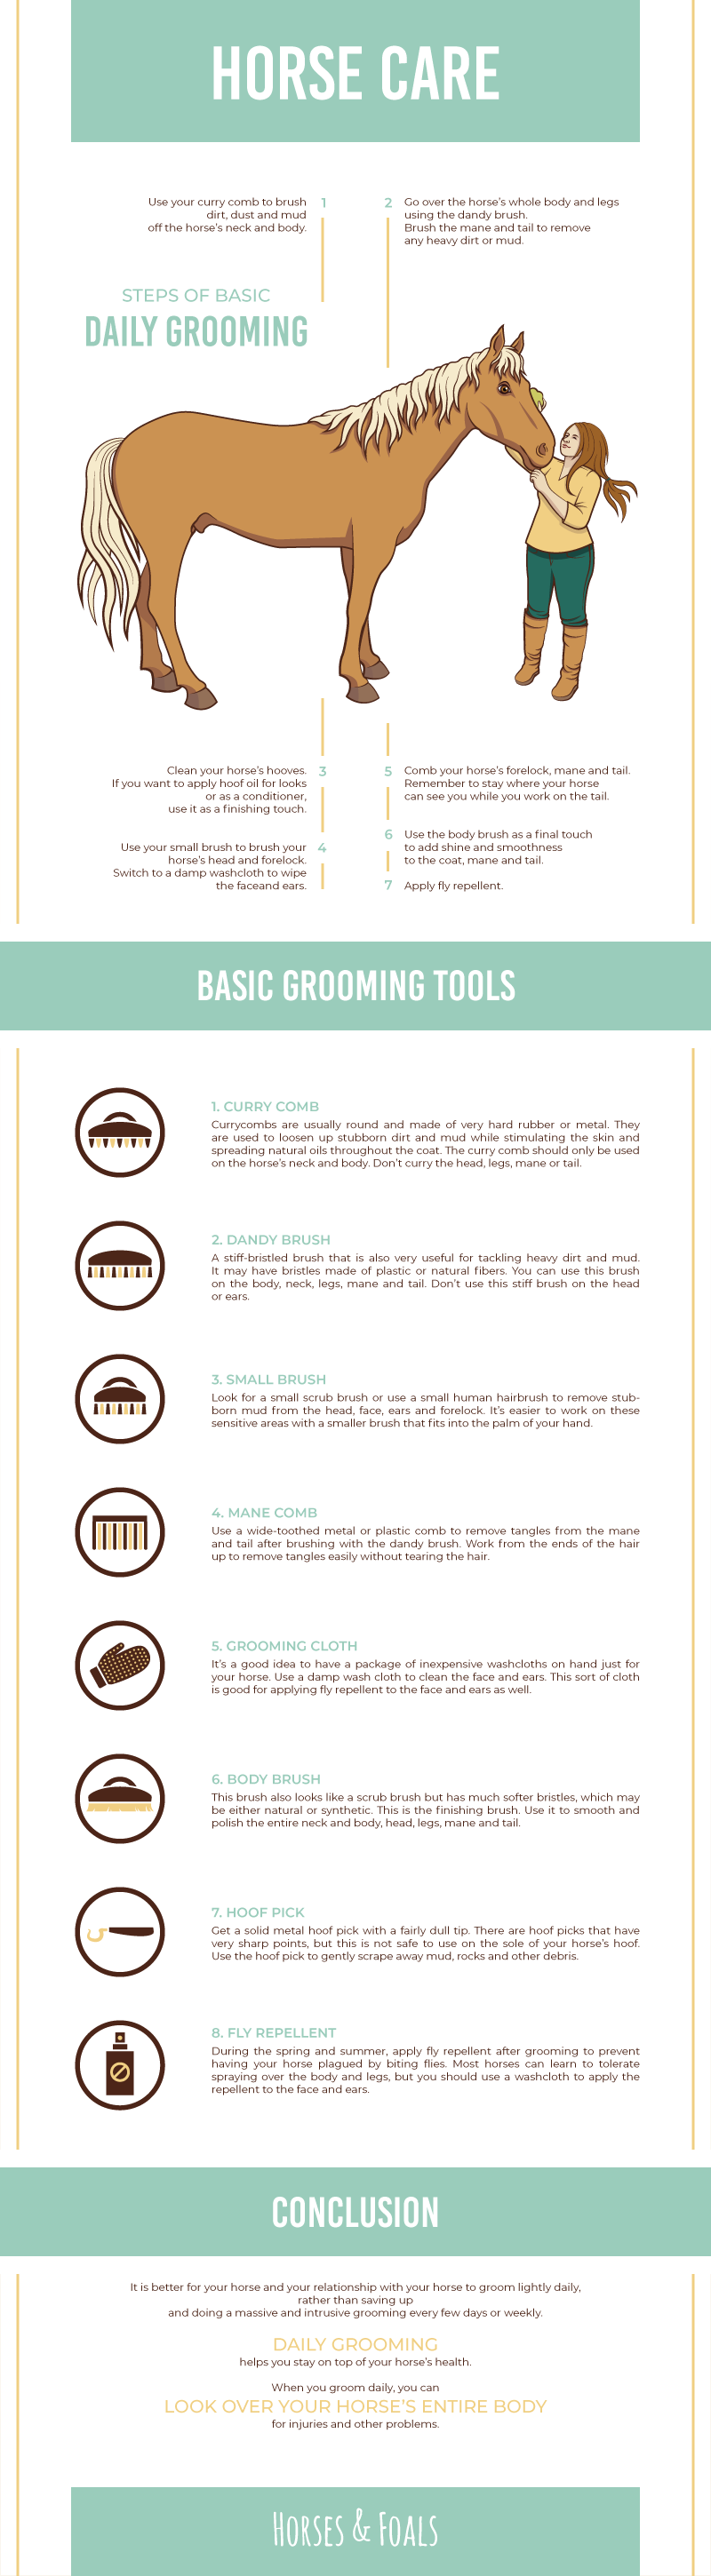 basic daily grooming tips